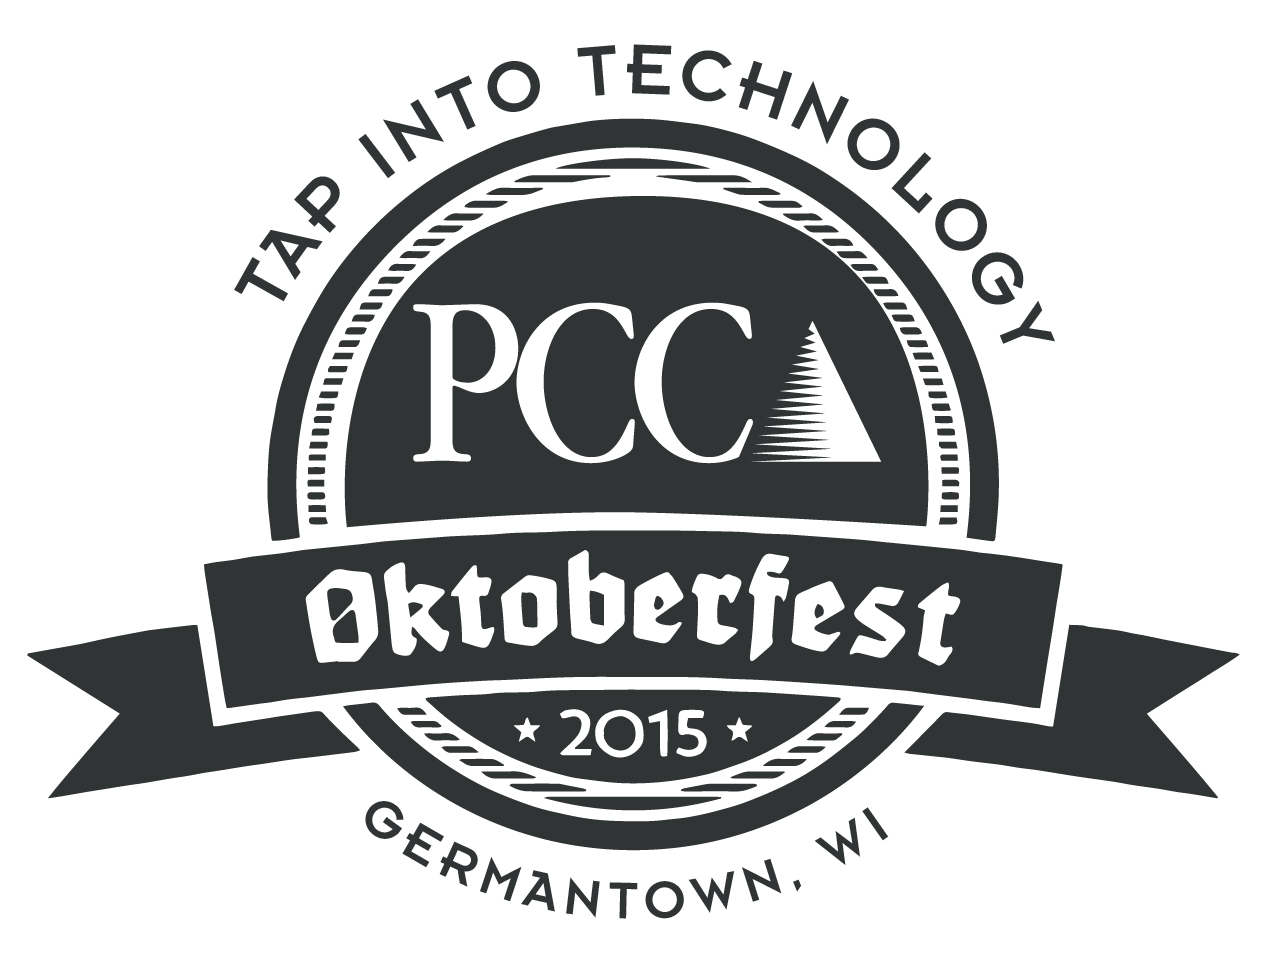 Oktoberfest vector page. Pcc tap into technology